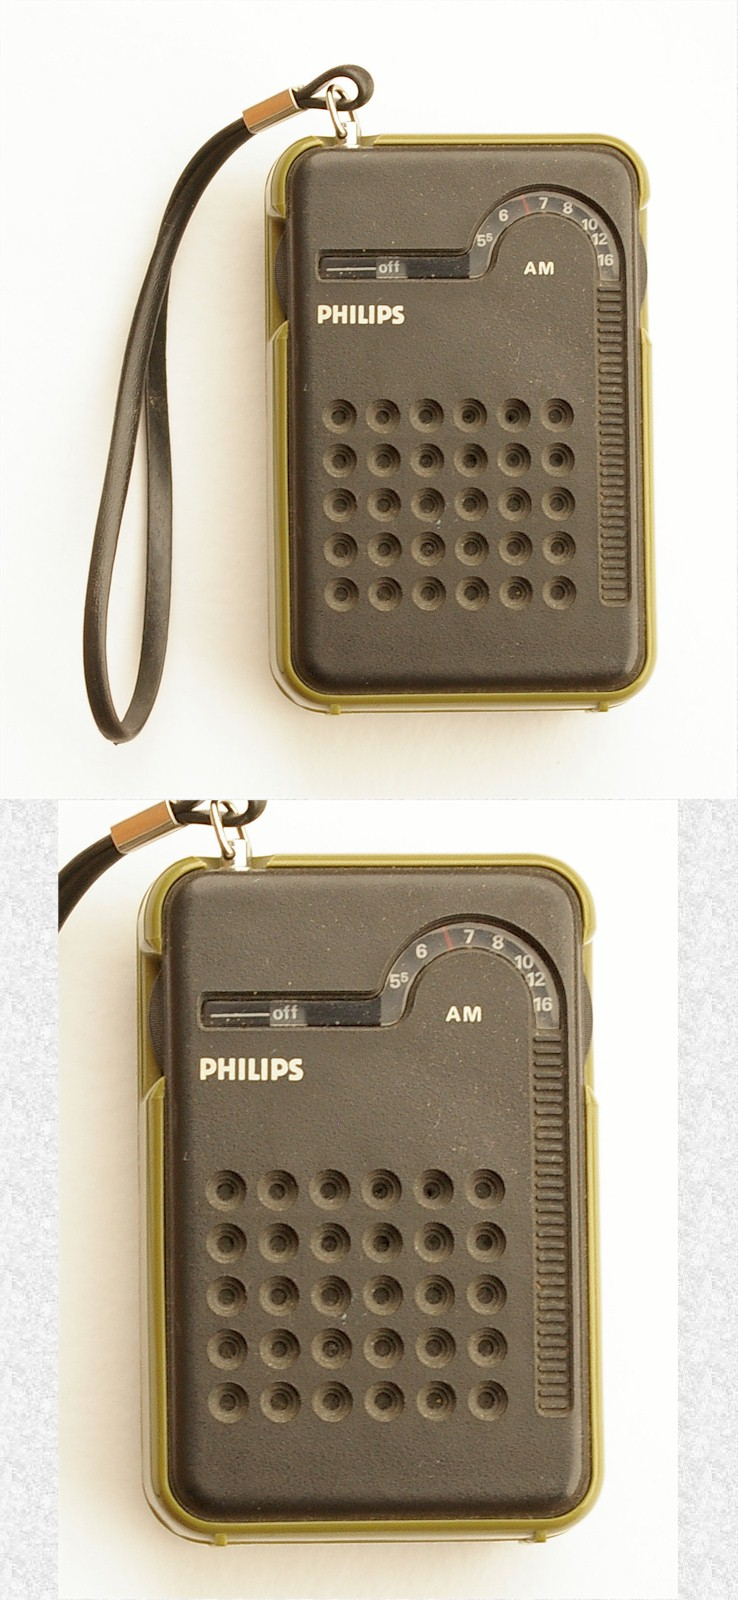 Philips 90RL047